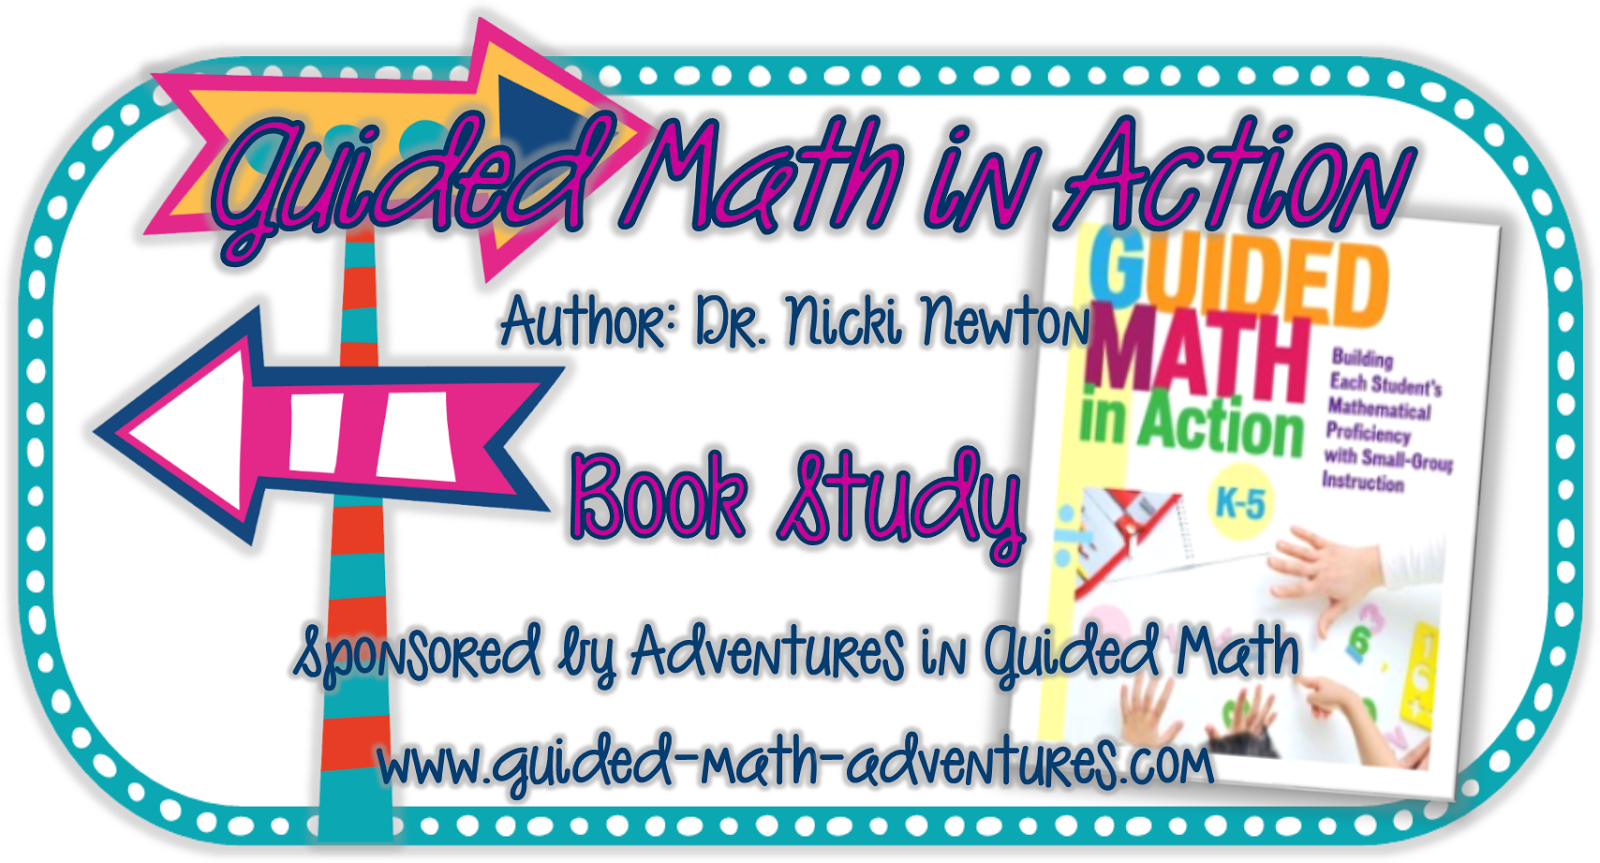 http://www.guided-math-adventures.com/2014/07/its-almost-time-fabulous-freebie.html